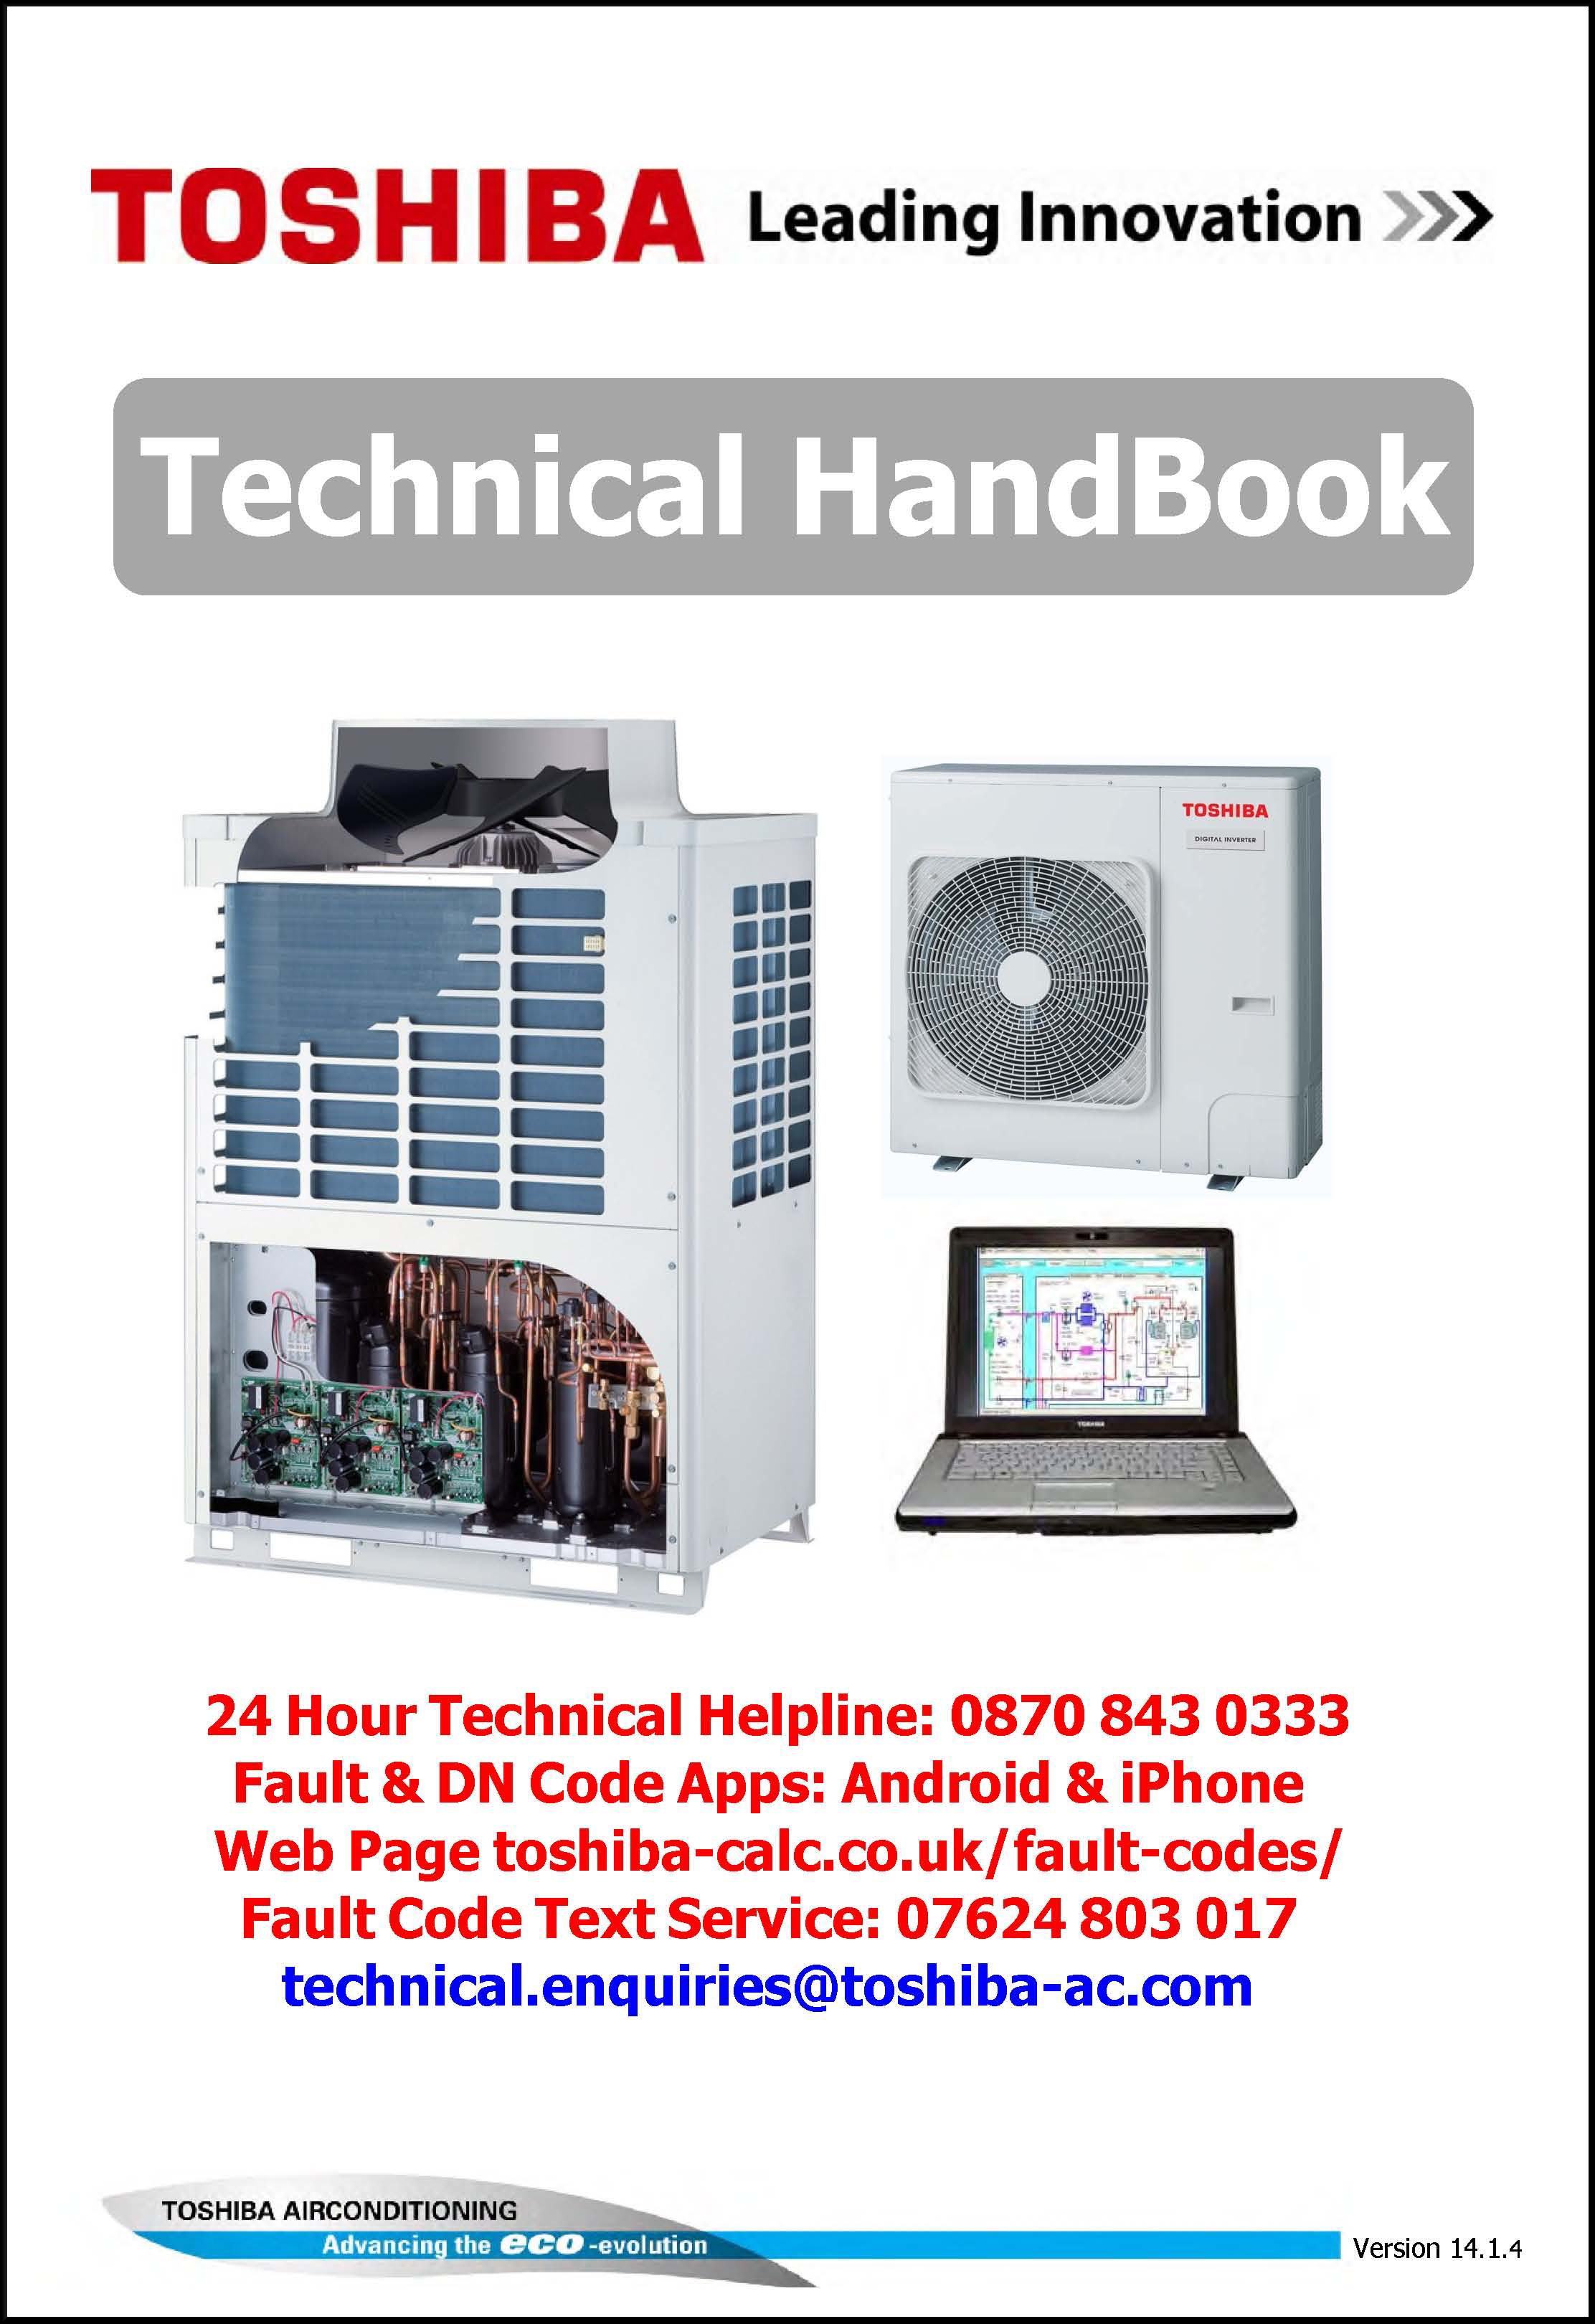 toshiba publishes engineers handbook as part of industry training rh toshiba aircon co uk toshiba service manual pdf Hunting Guide Services